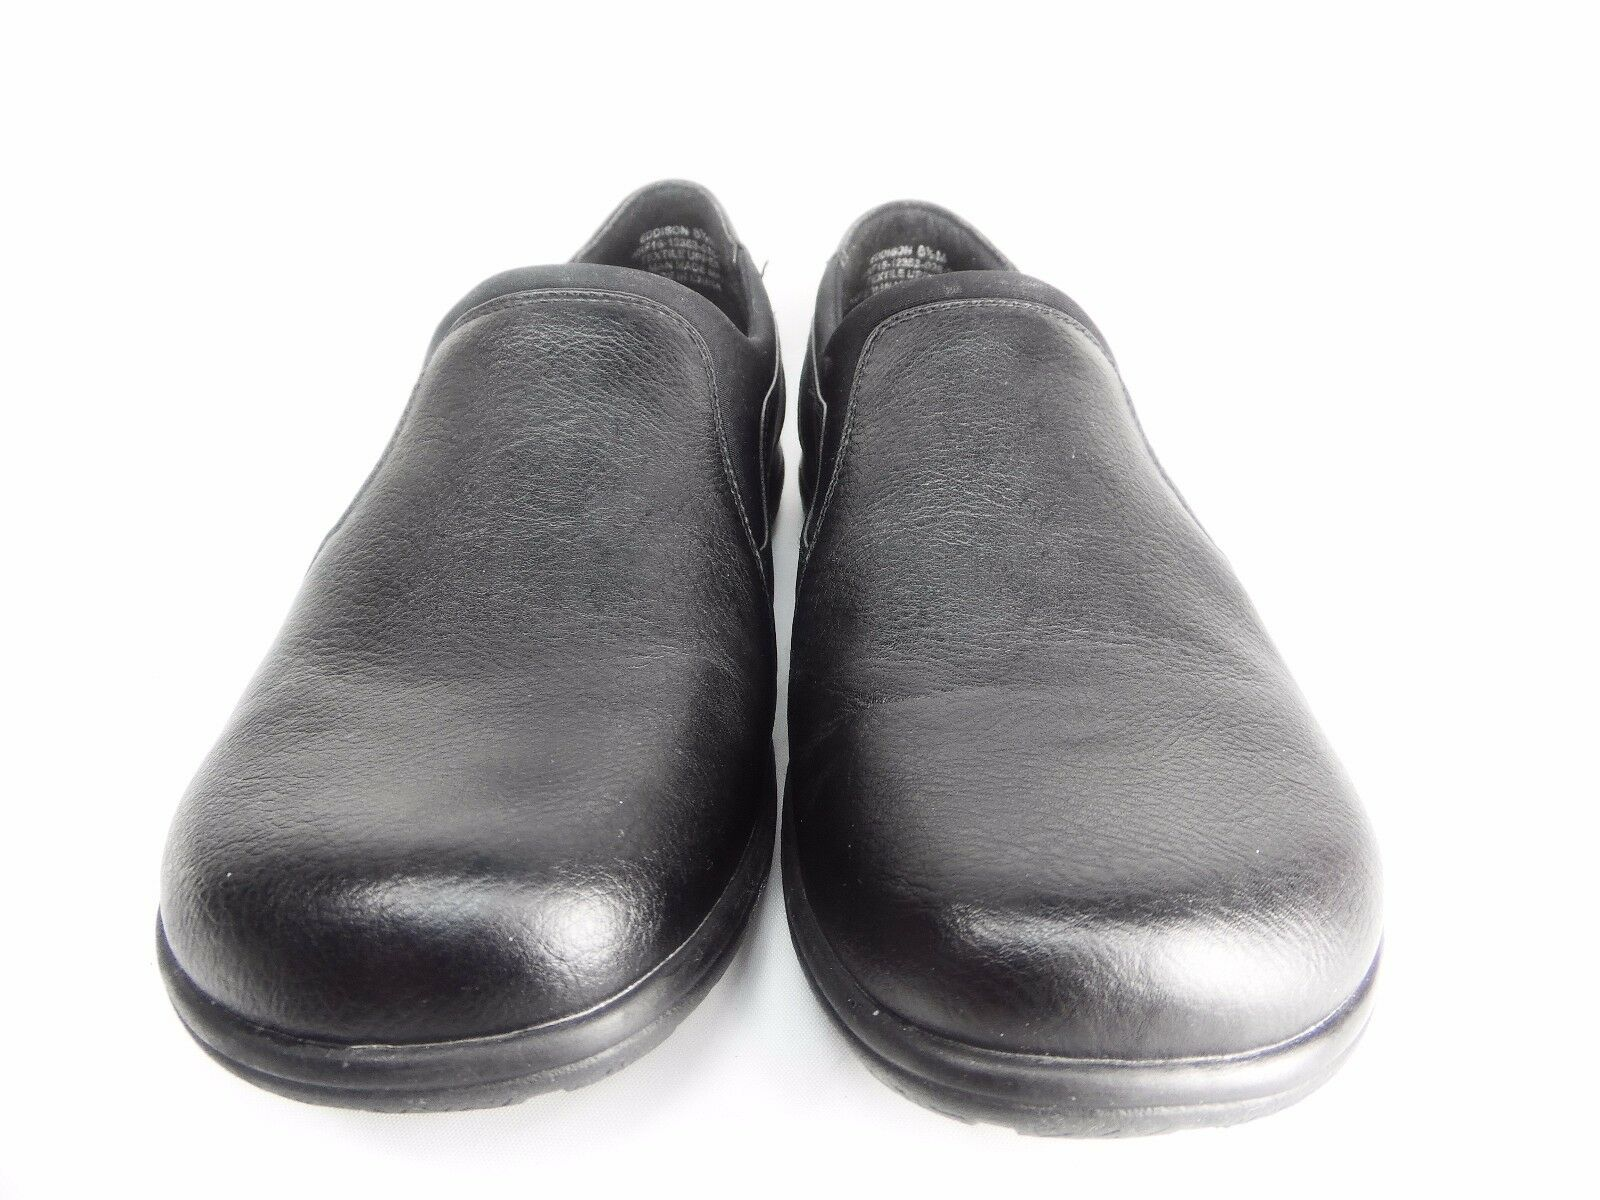 Yuu Eddison Slip On Shoes Black  Size 8.5M